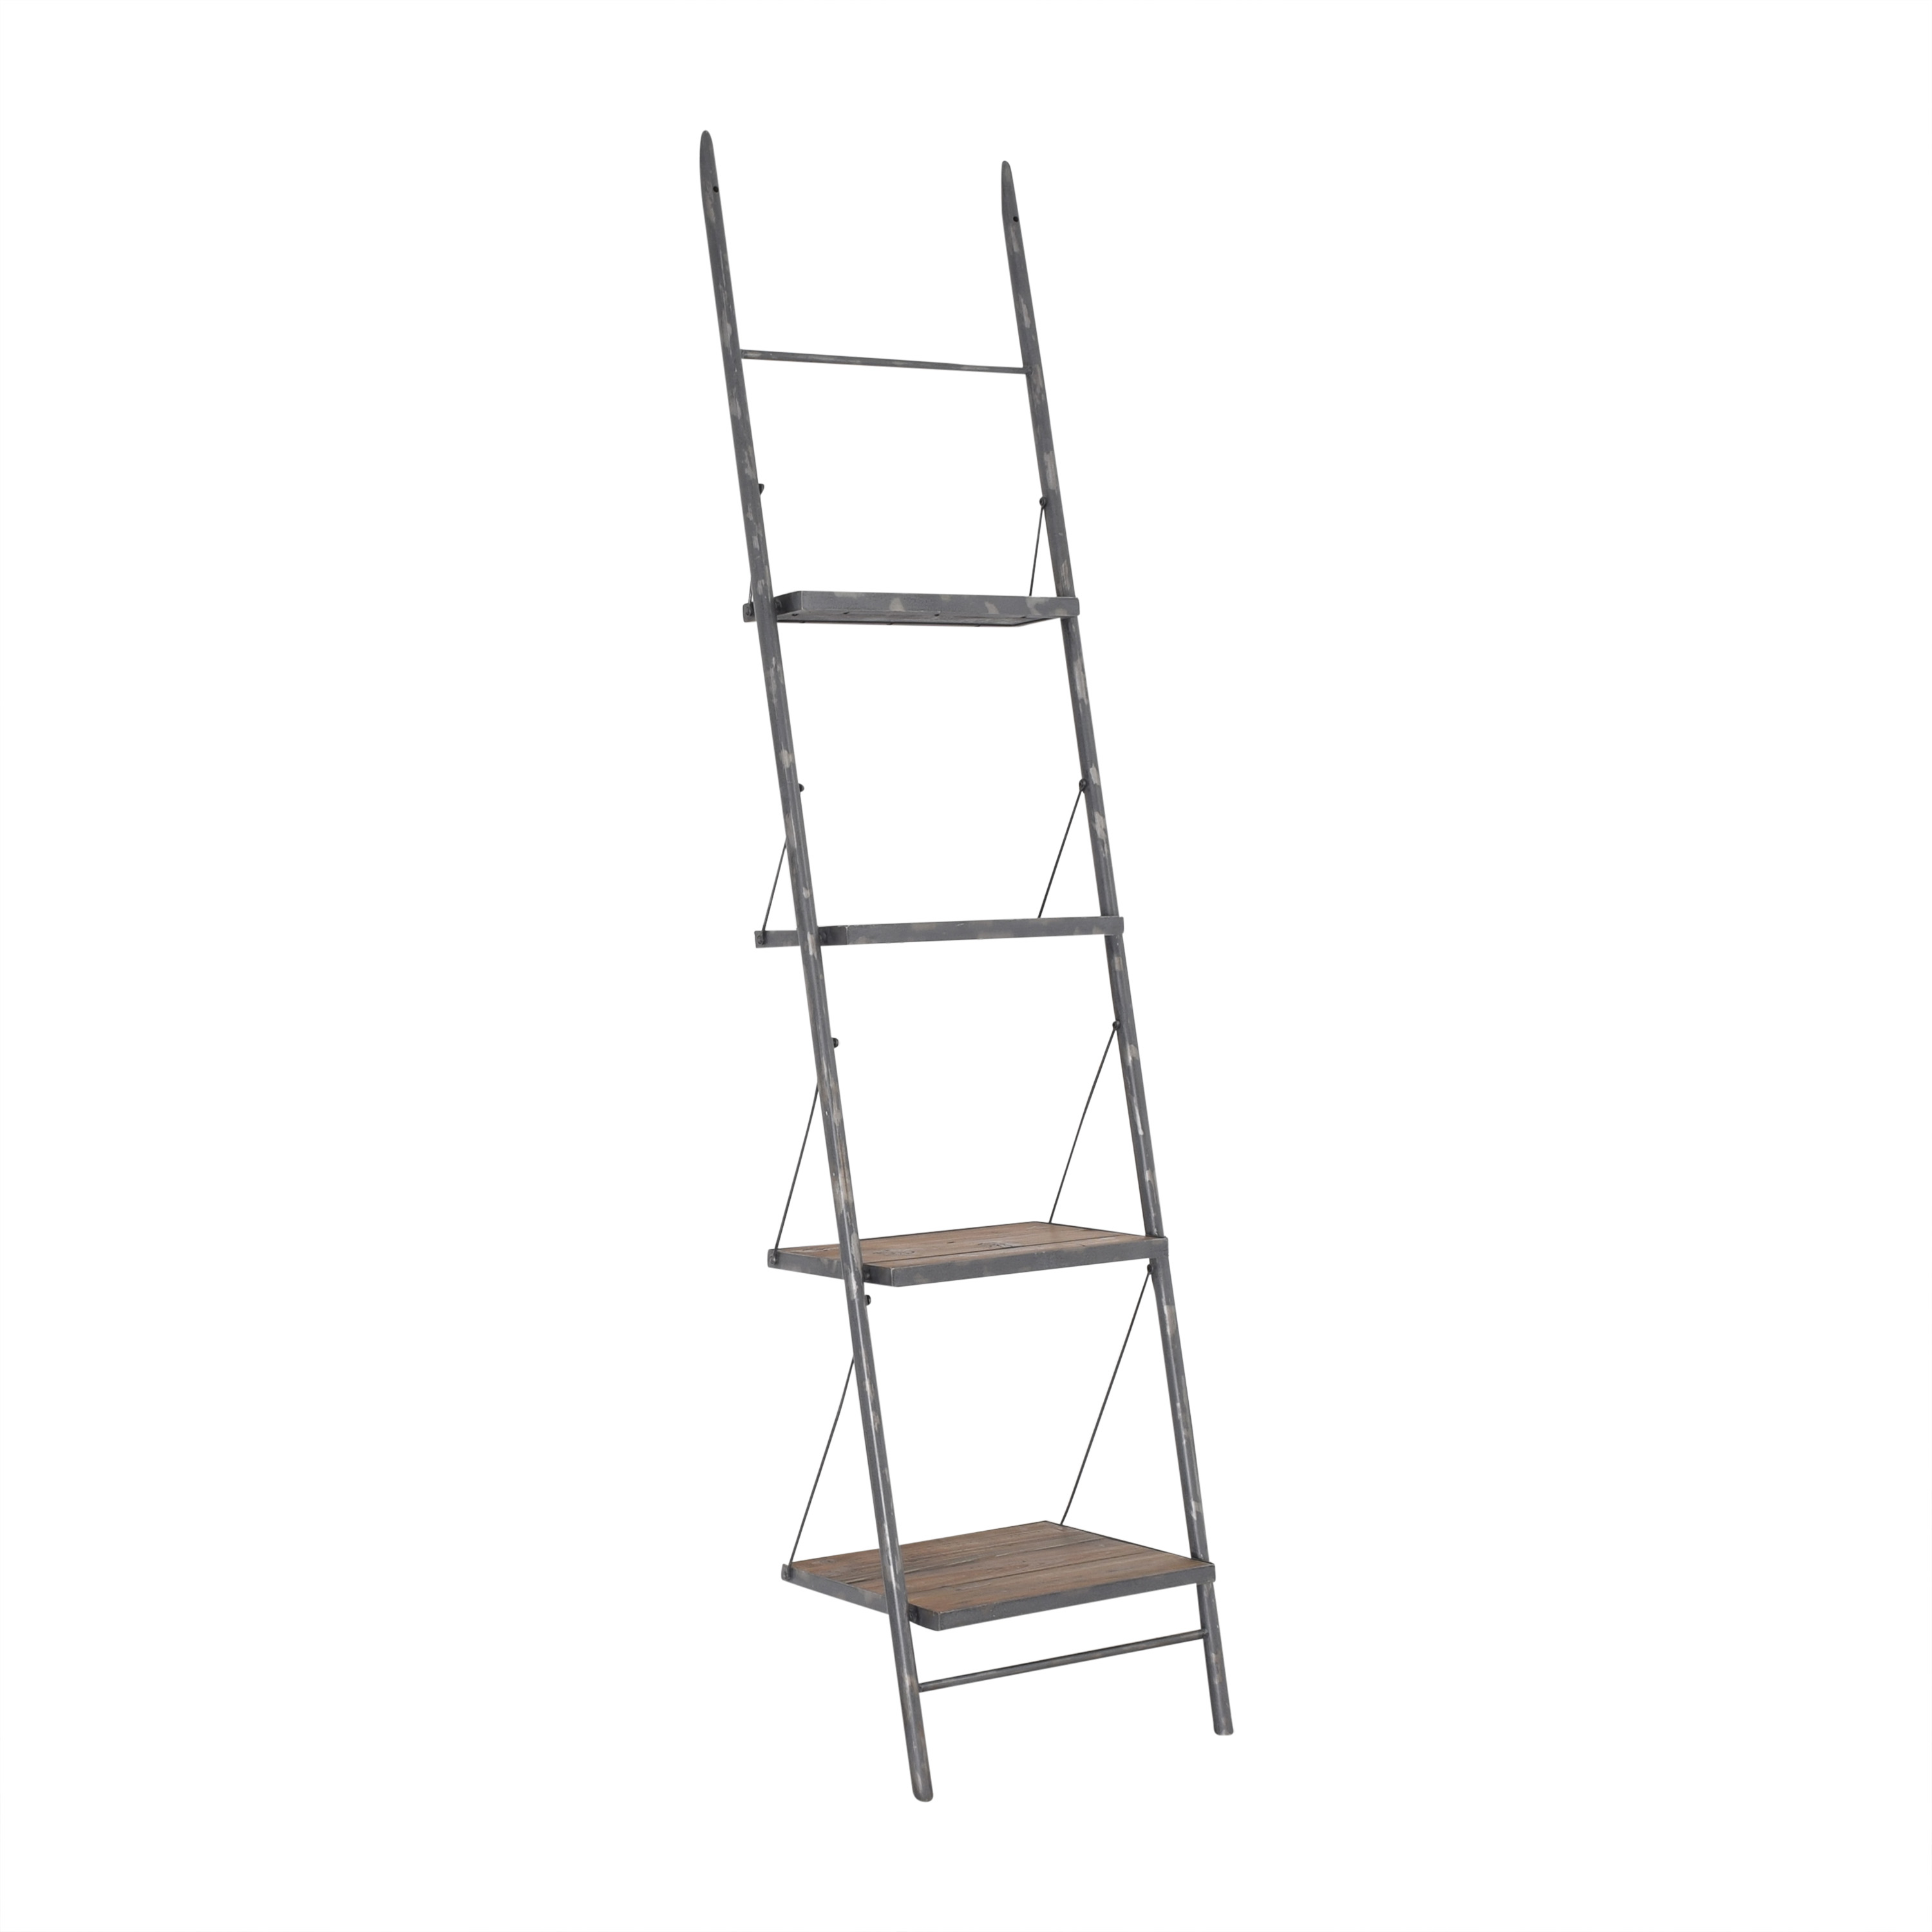 Design MIX Furniture Design MIX Furniture Leaning Ladder Shelf brown and gray